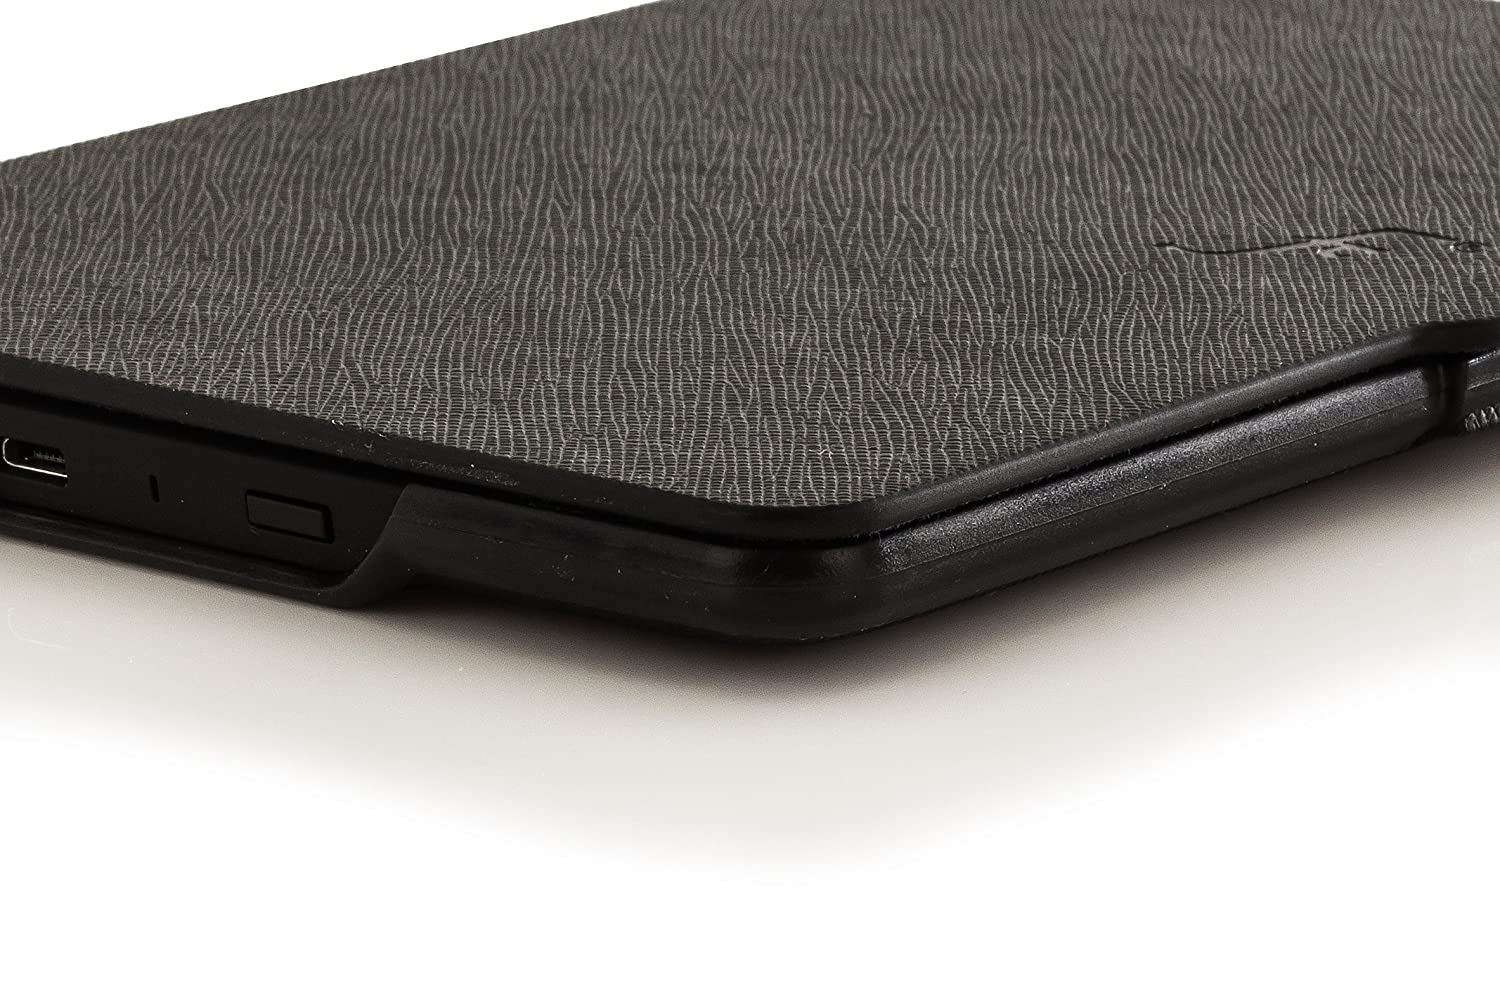 Details about Forefront Cases® Shell Smart Case Cover Sleeve Wallet for  Amazon Kindle Voyage